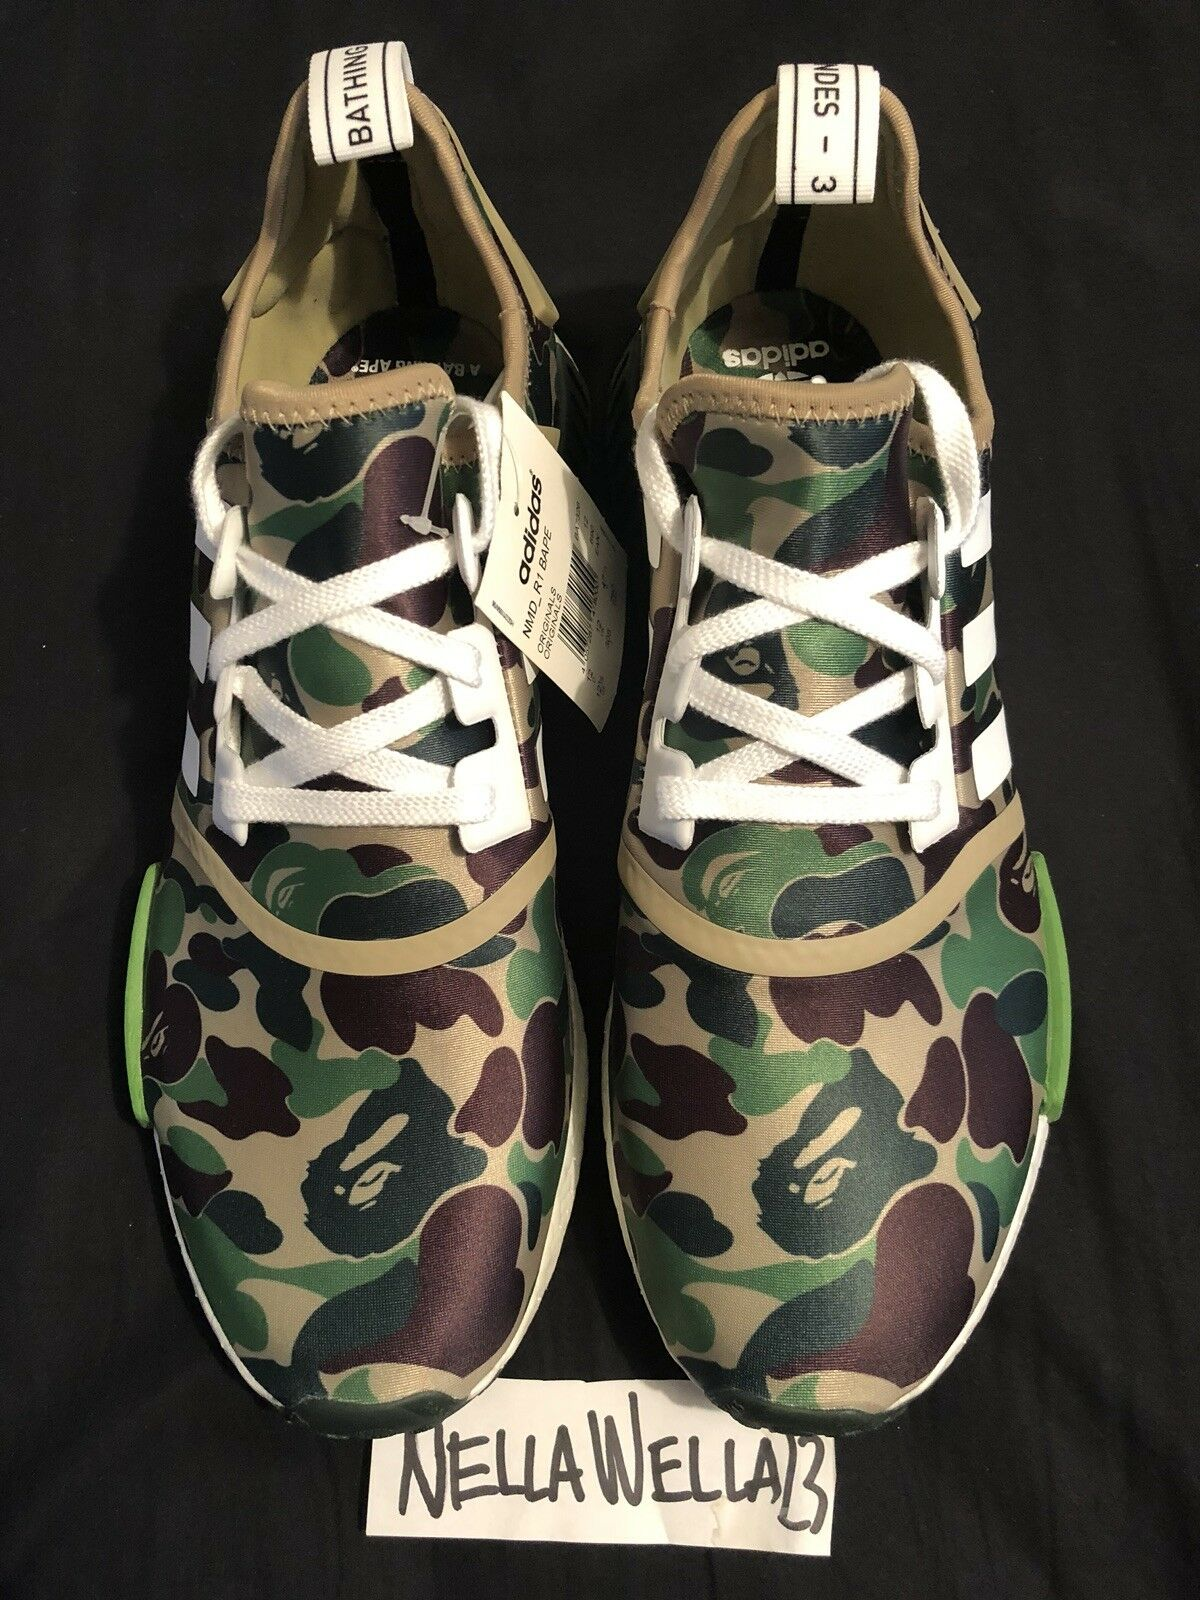 Adidas NMD R1 BAPE Green Camo size 12.5 BRAND NEW 100% Authentic